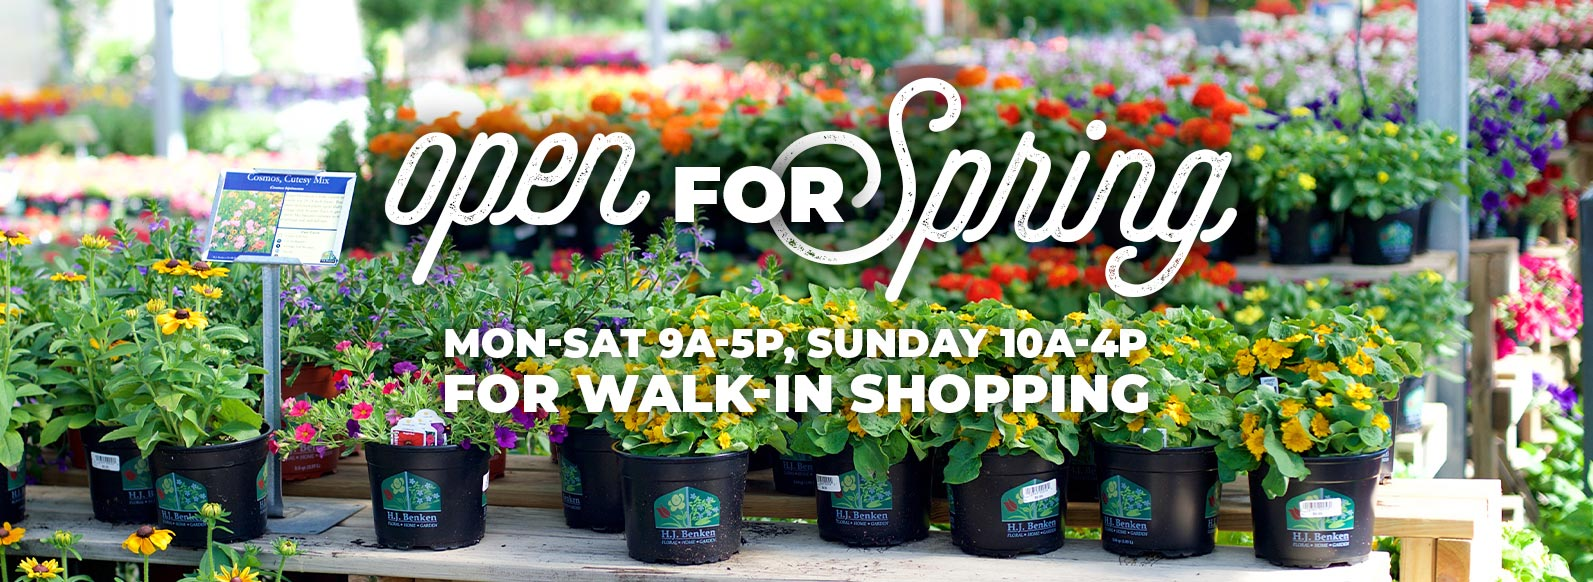 Open for Spring for Walk-In Shopping: Monday through Saturday 9am to 5pm, Sunday 10am to 4pm.